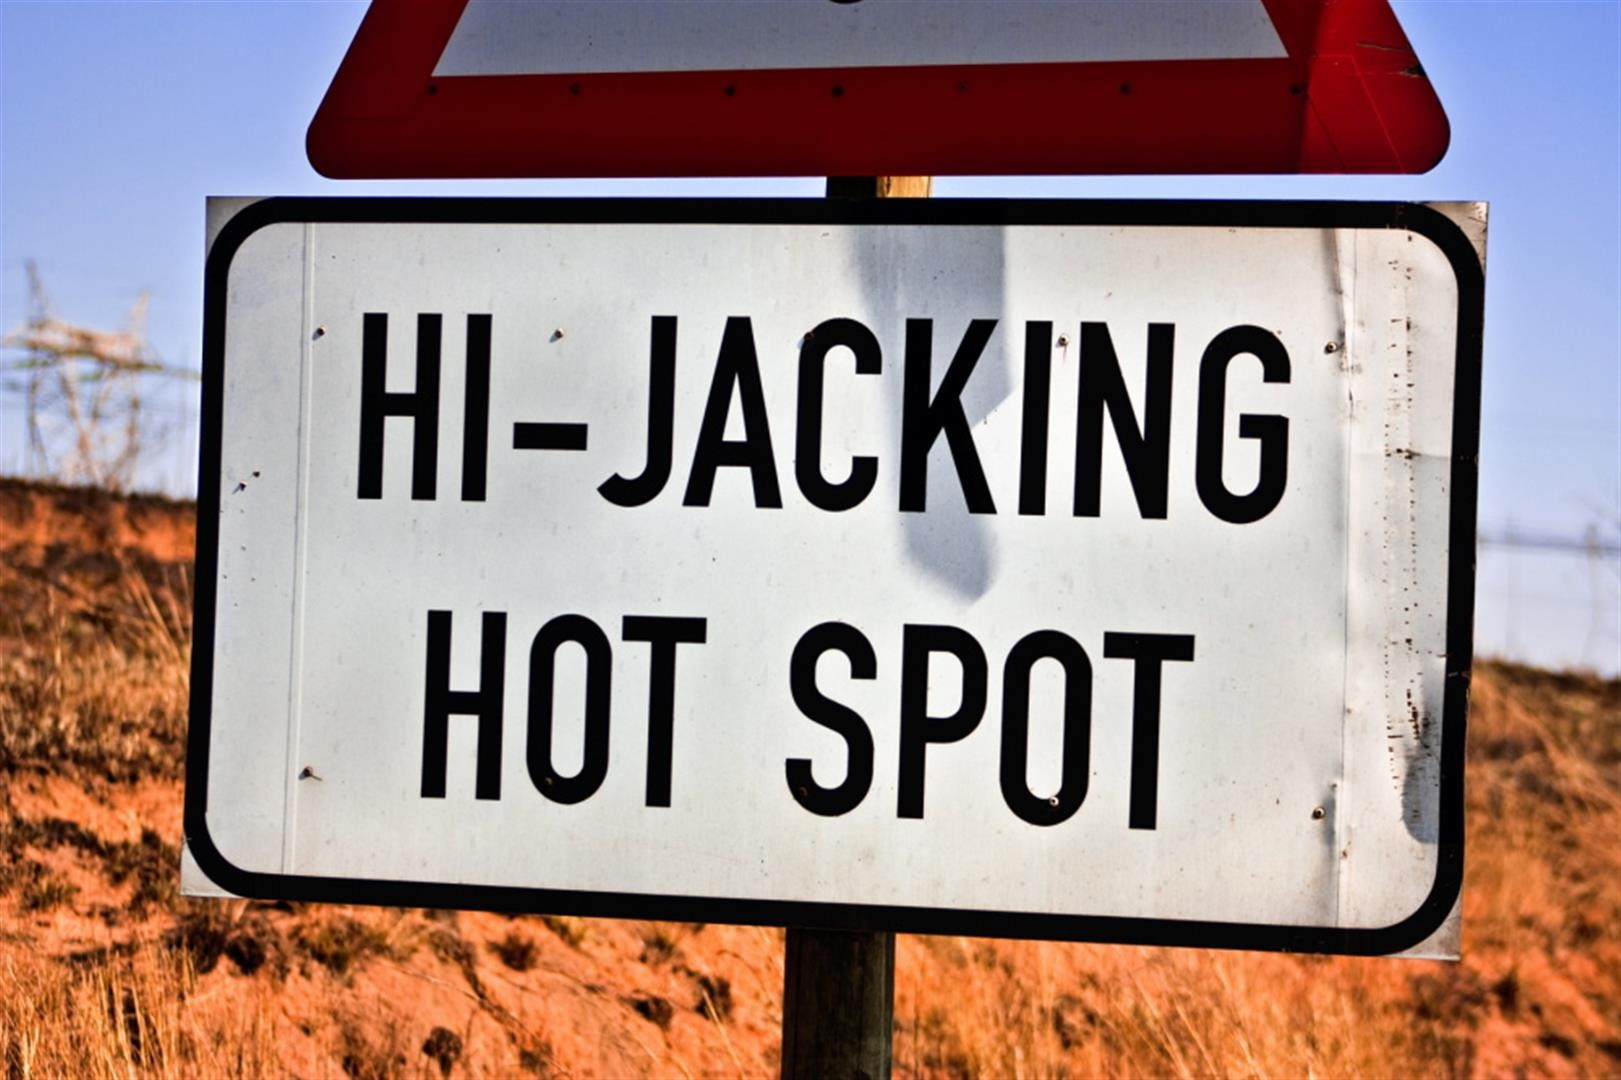 Hijacking hot spot warning sign | Biptel